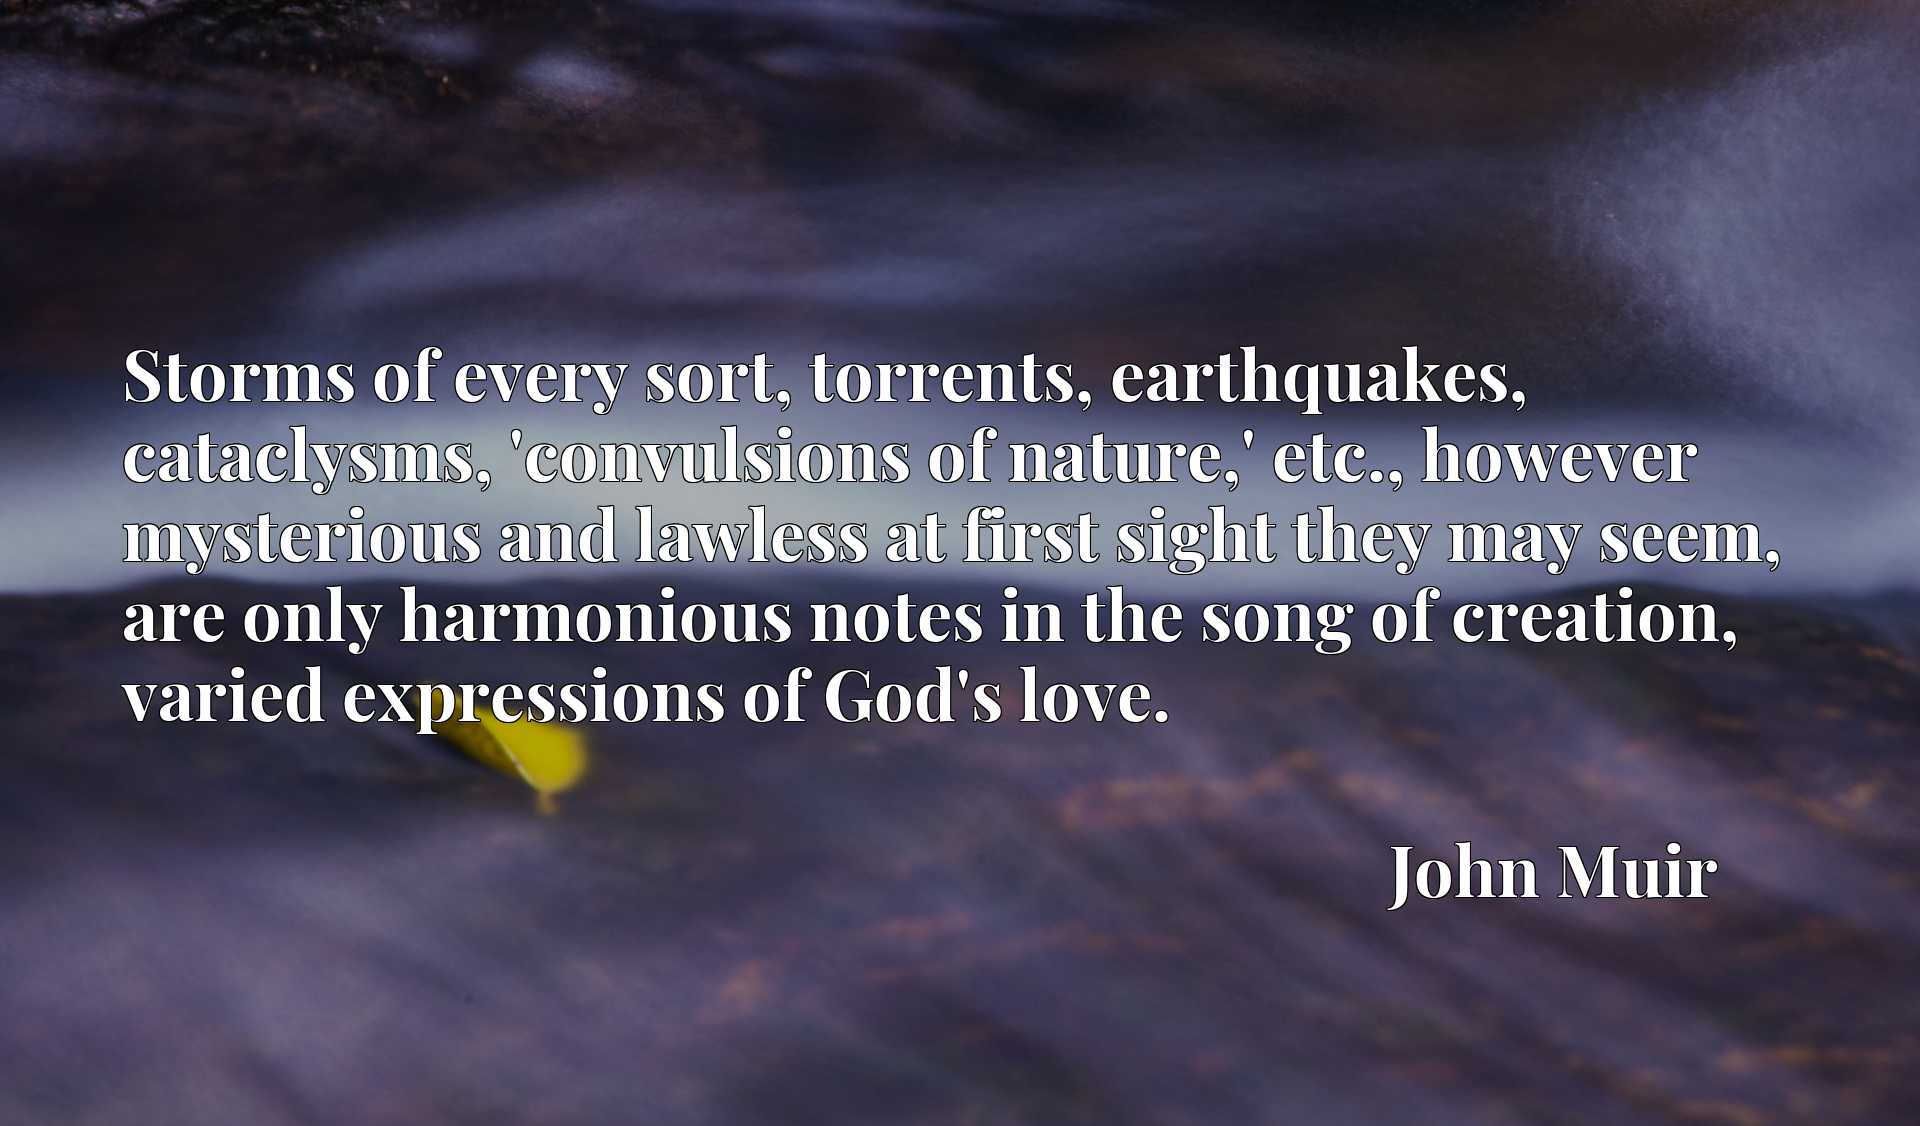 Storms of every sort, torrents, earthquakes, cataclysms, 'convulsions of nature,' etc., however mysterious and lawless at first sight they may seem, are only harmonious notes in the song of creation, varied expressions of God's love.